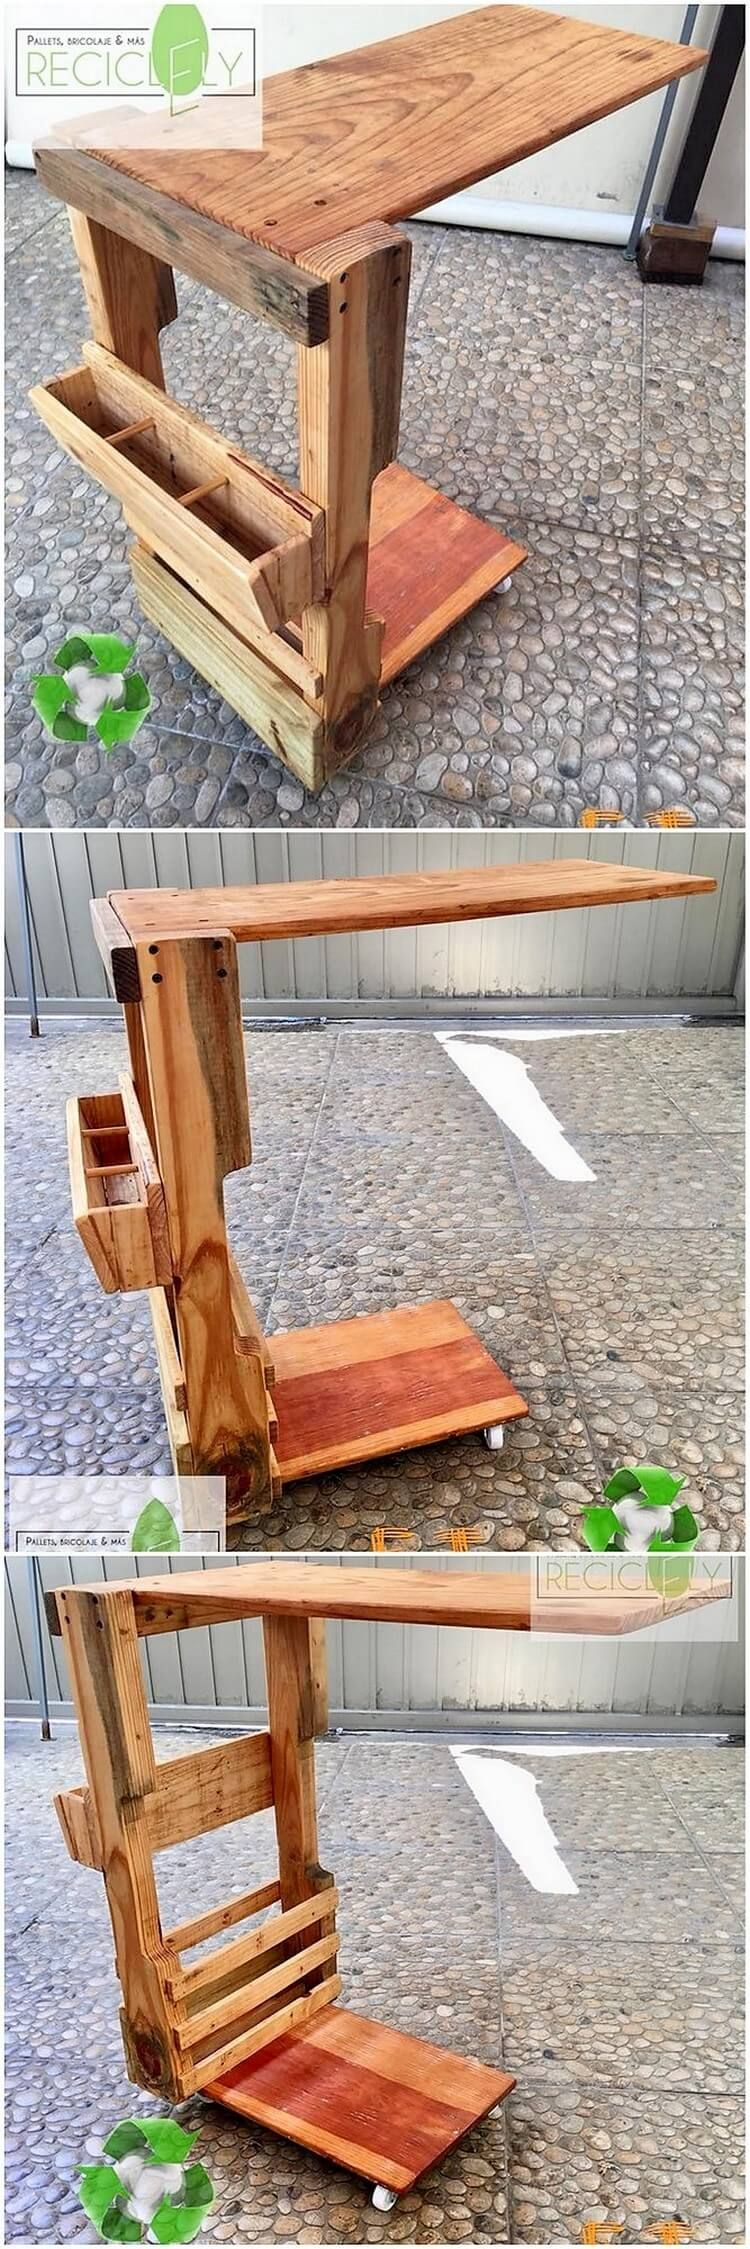 Classy Computer Tables To Go With Living Room Decor: Up-to-Date Wood Pallets Reshaping Ideas